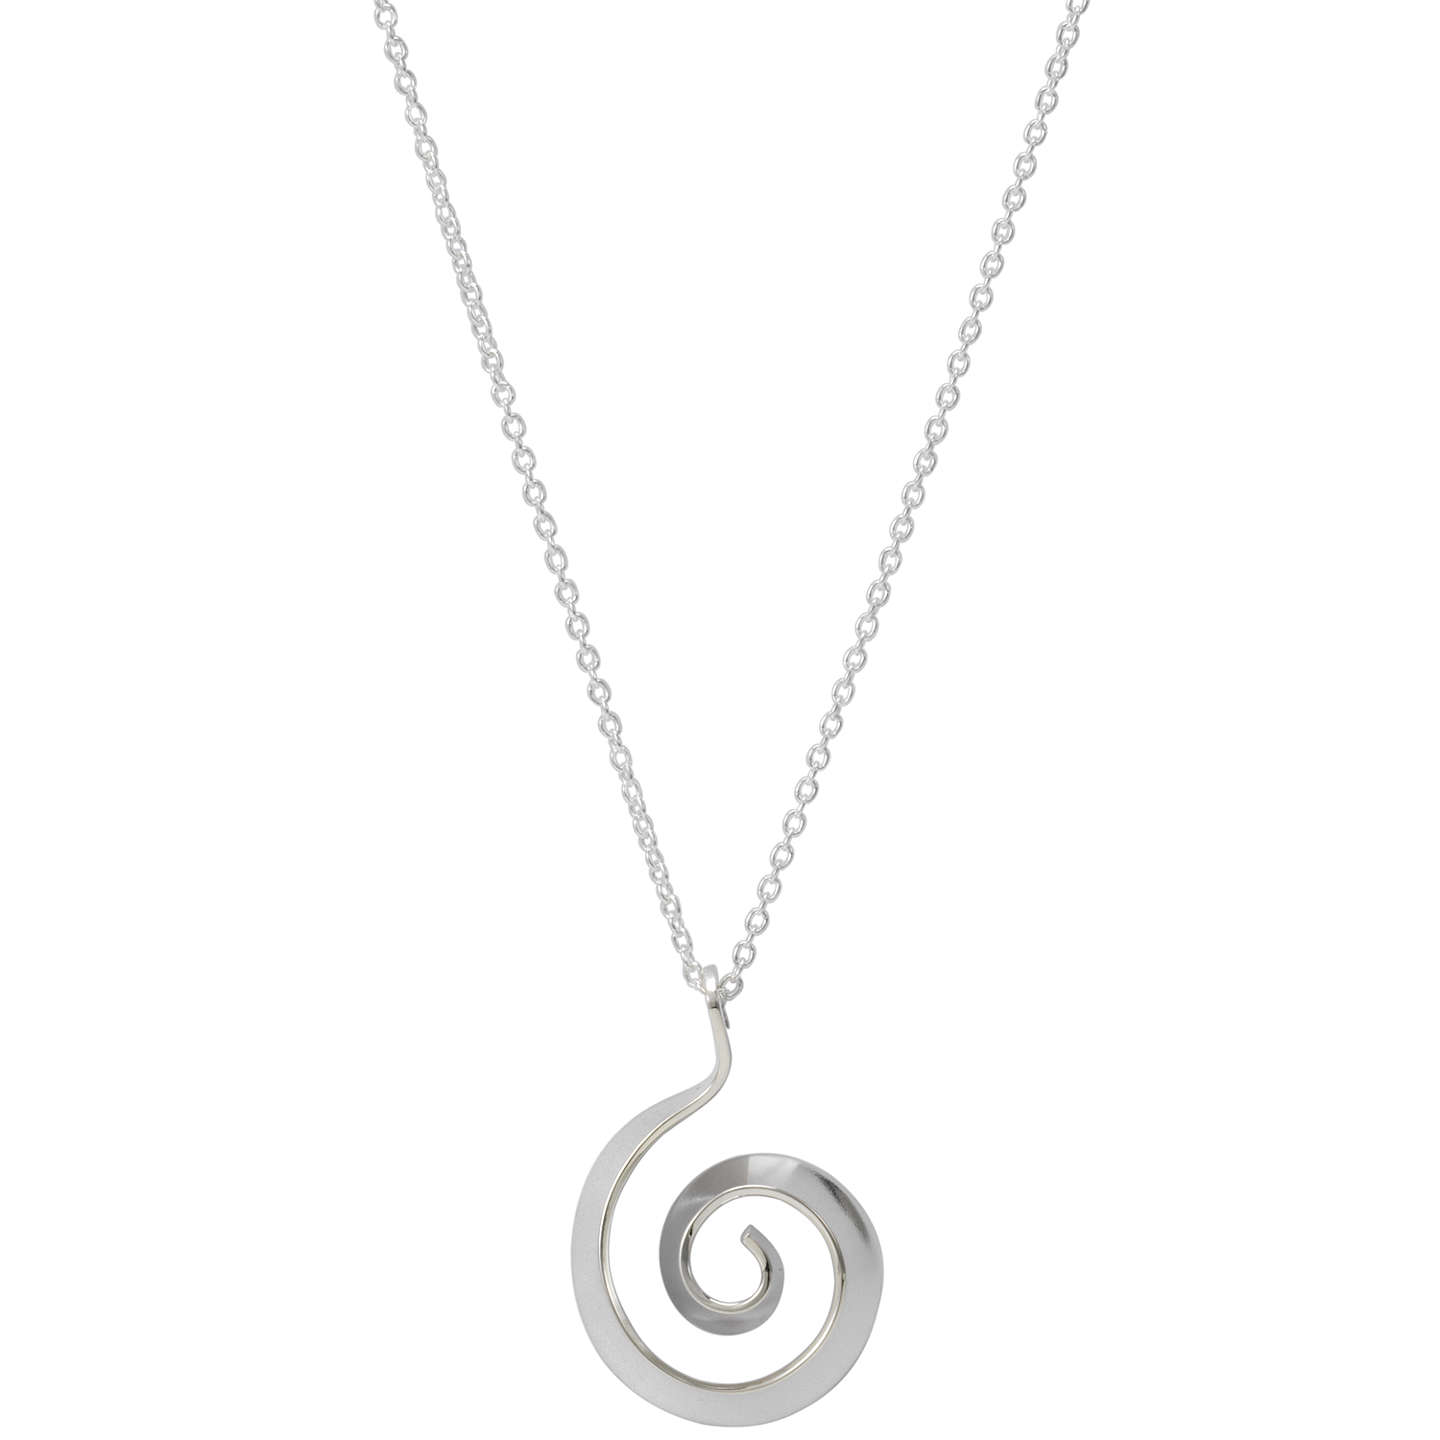 products kennethjaylane swirl resize collections necklaces necklace com pendant